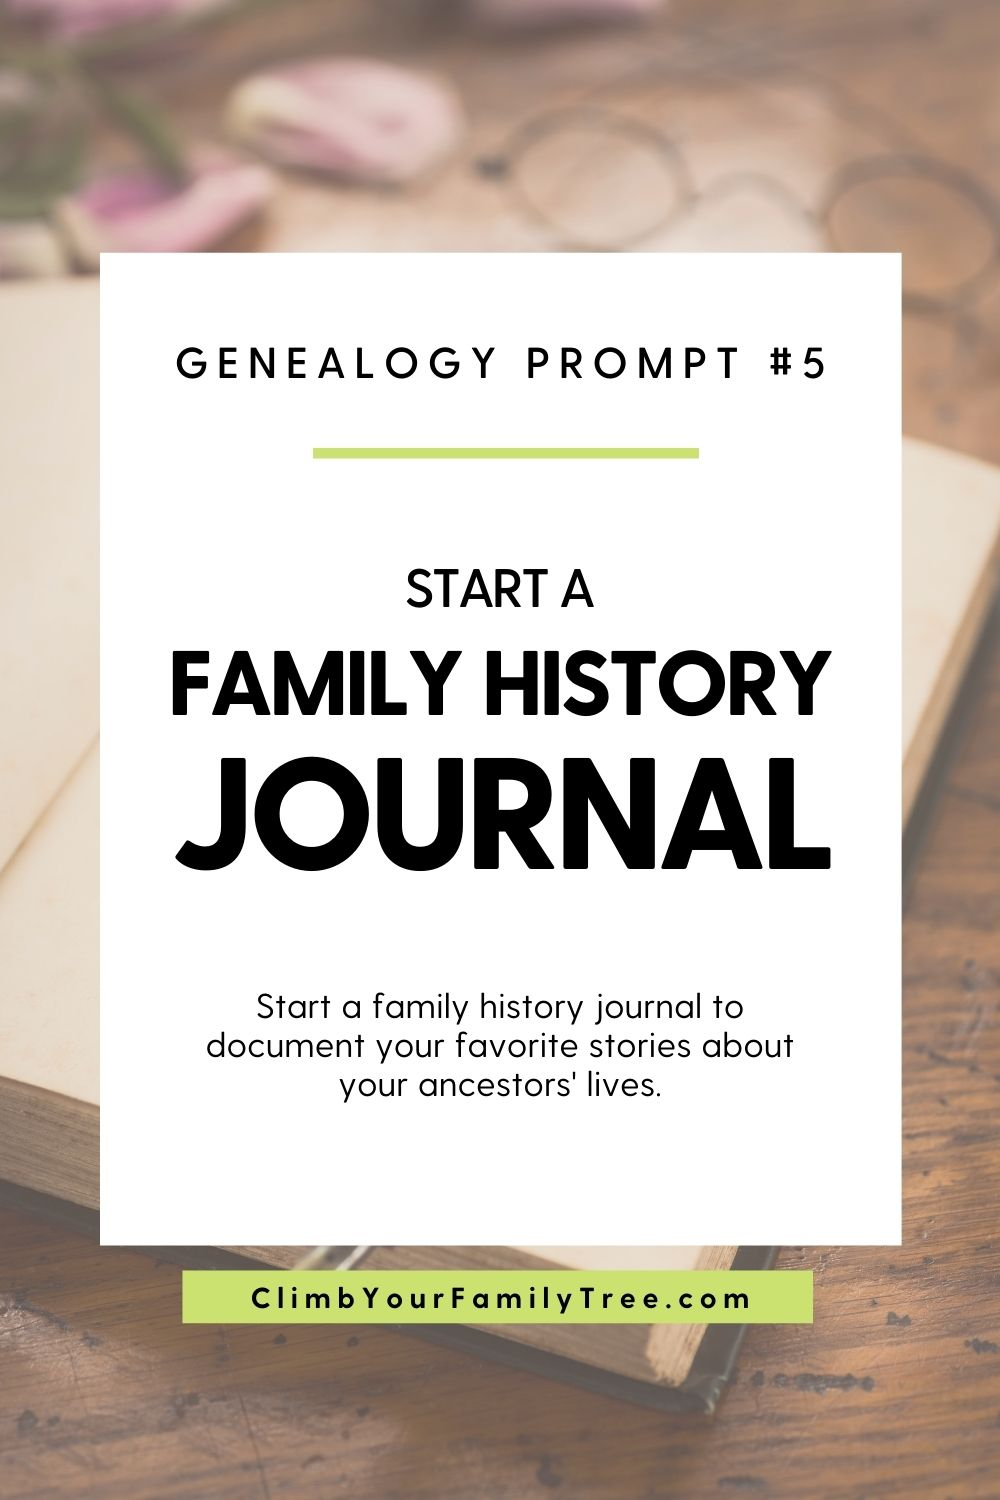 Genealogy Prompt 5 - Start a Family History Journal - Start a family history journal to document your favorite stories about your ancestors lives - ClimbYourFamilyTree.com